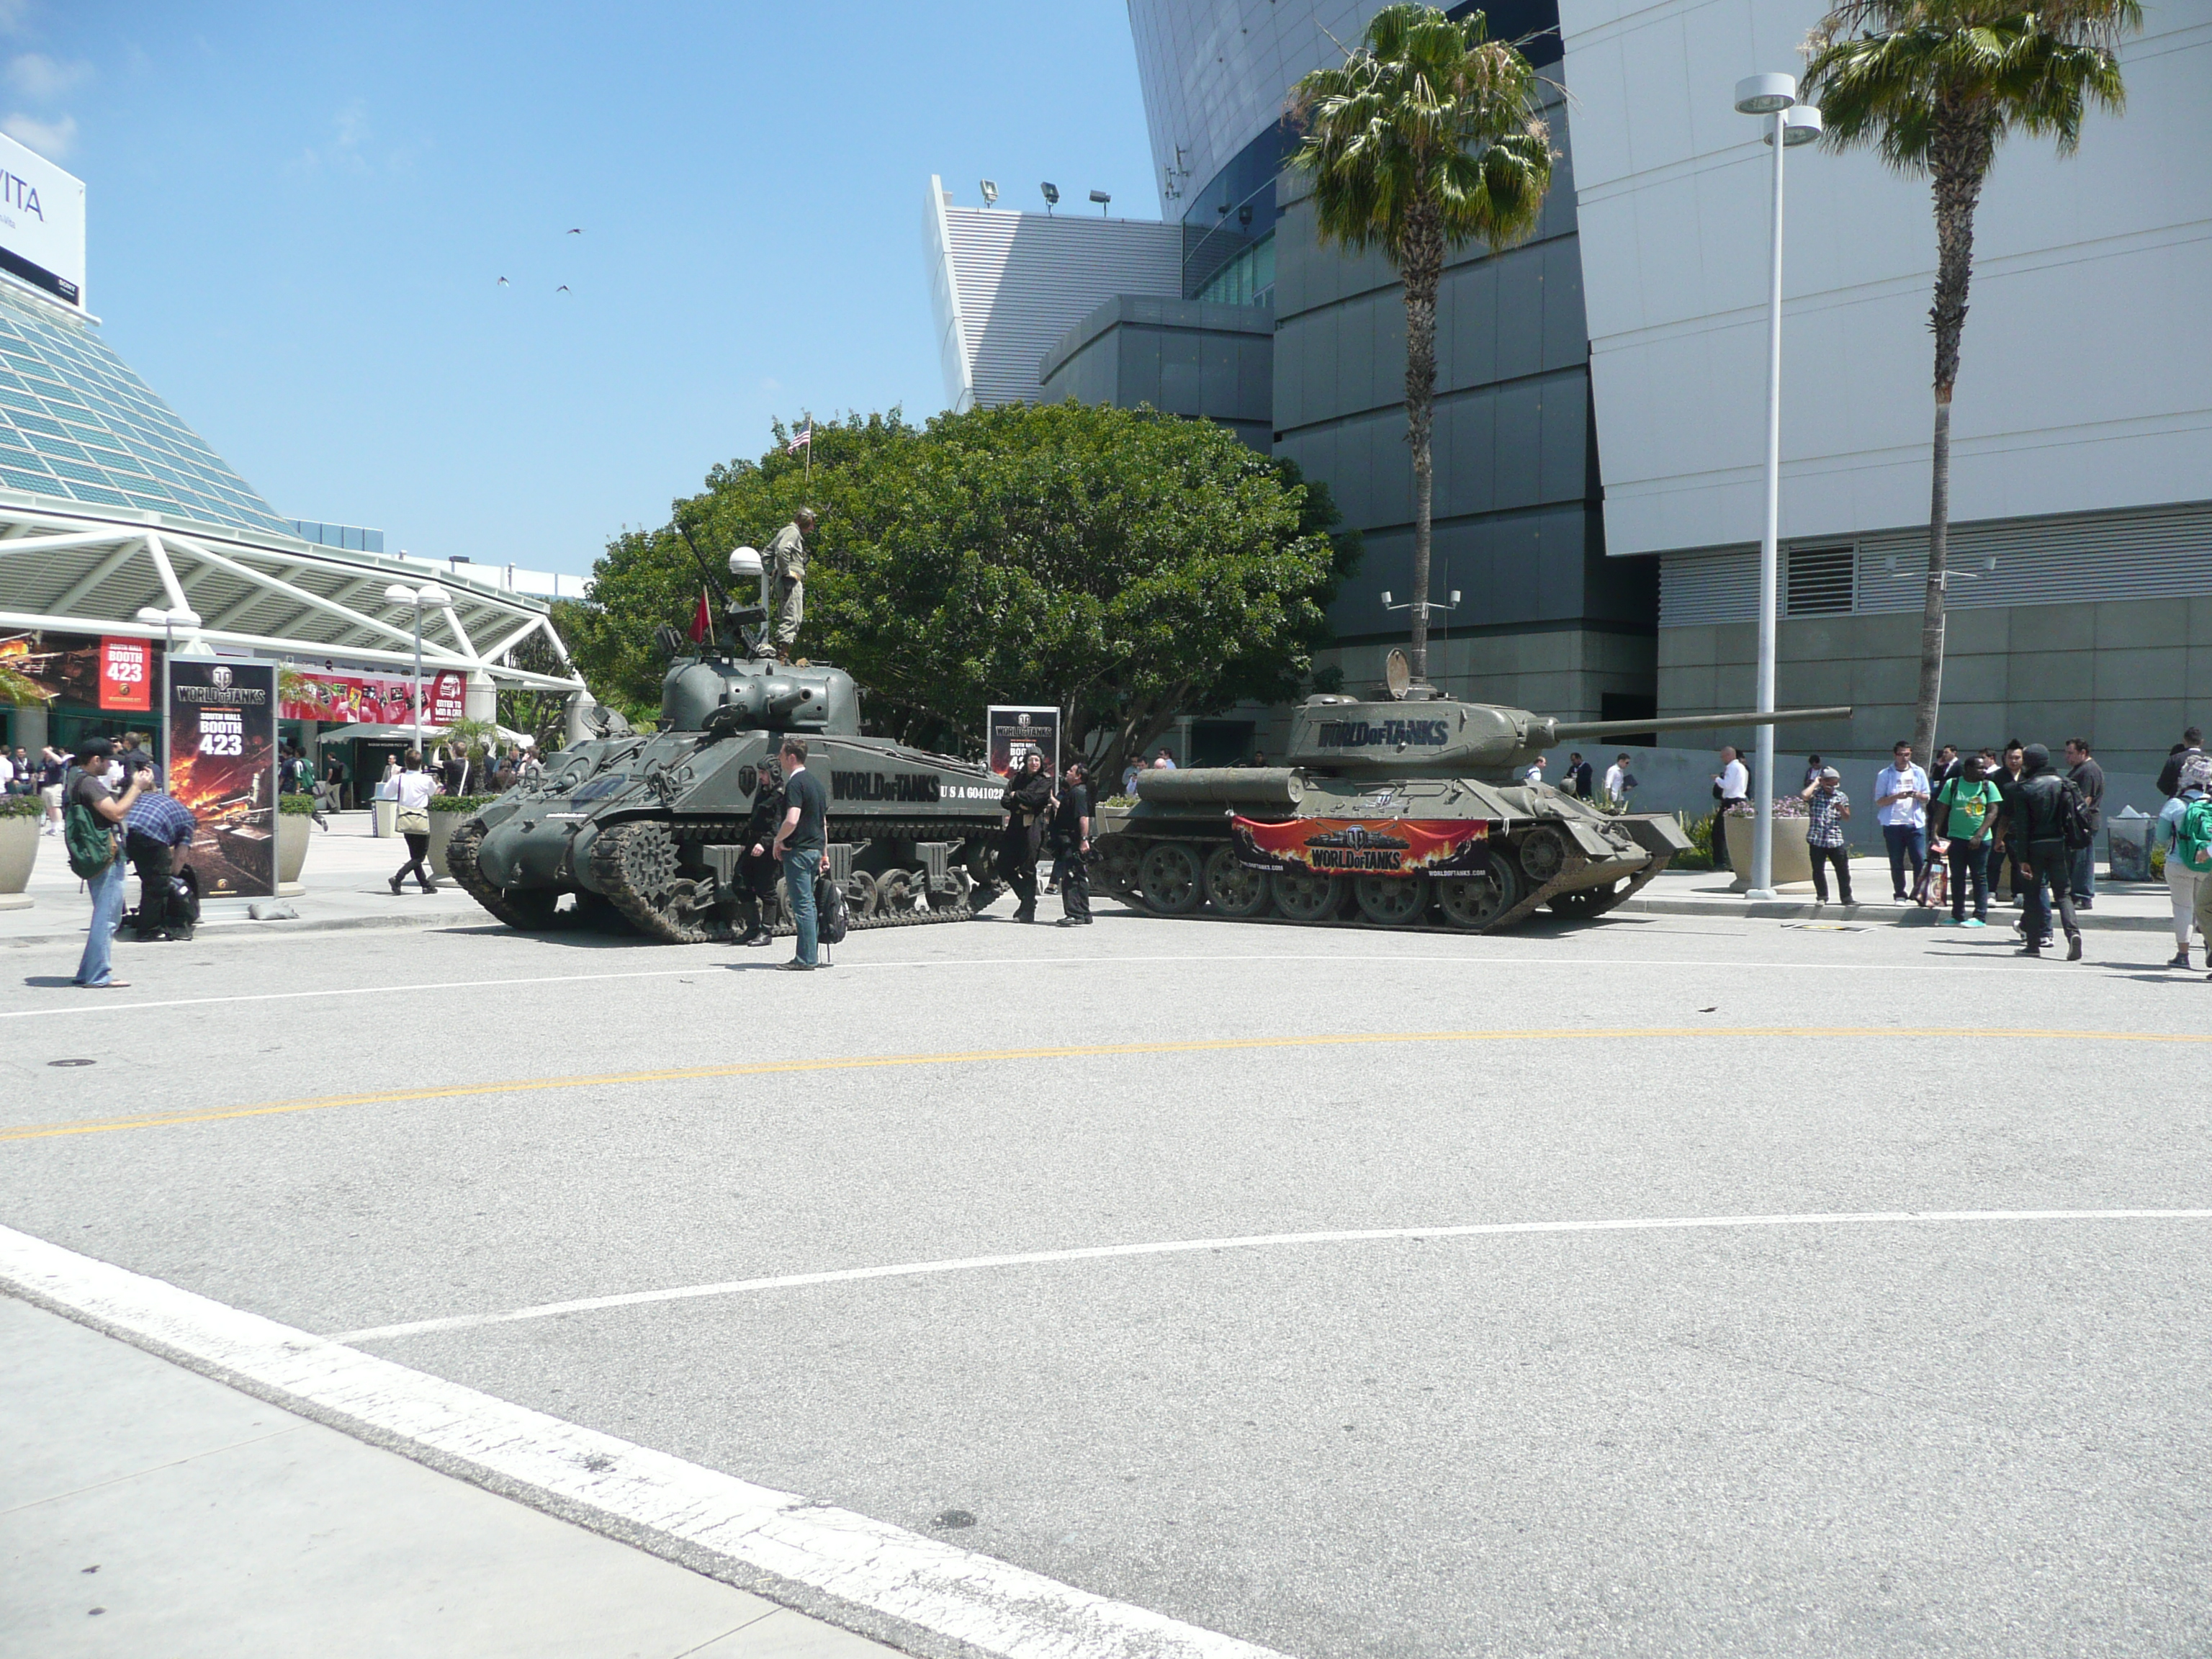 Day two at E3 2011: 3DS announcements, Minecraft Pocket Edition, FIFA 12, Heroes of Ruin, and the omnipresent PS Vita